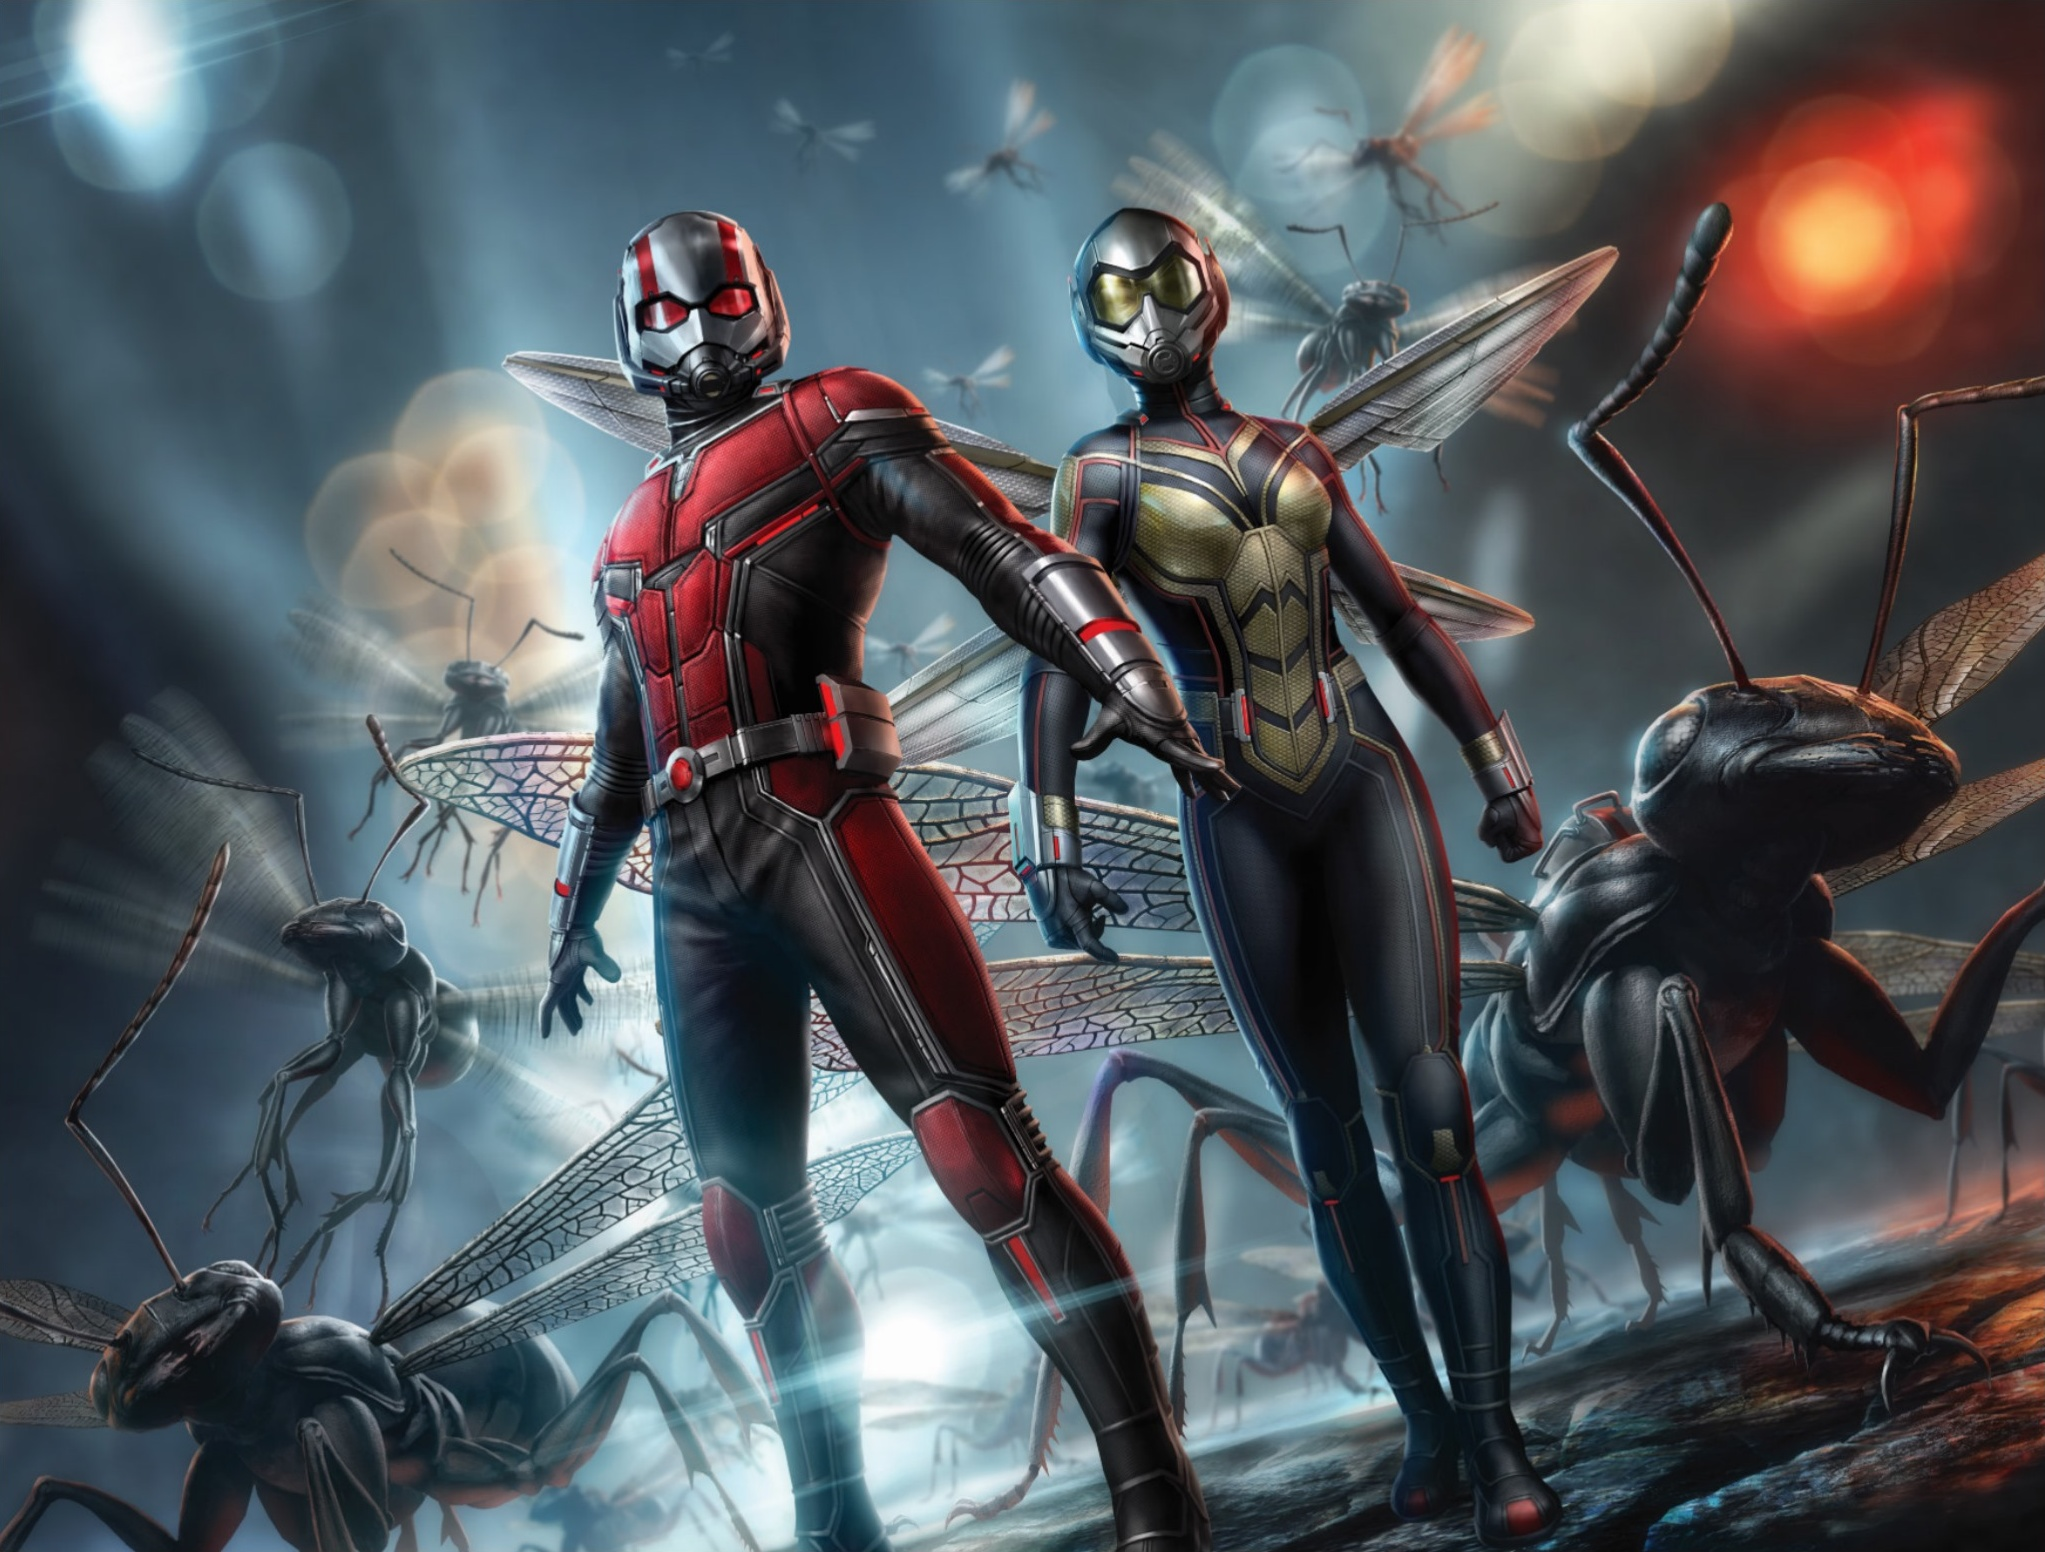 دانلود فیلم ant-man 2 2018 ant-man and the wasp